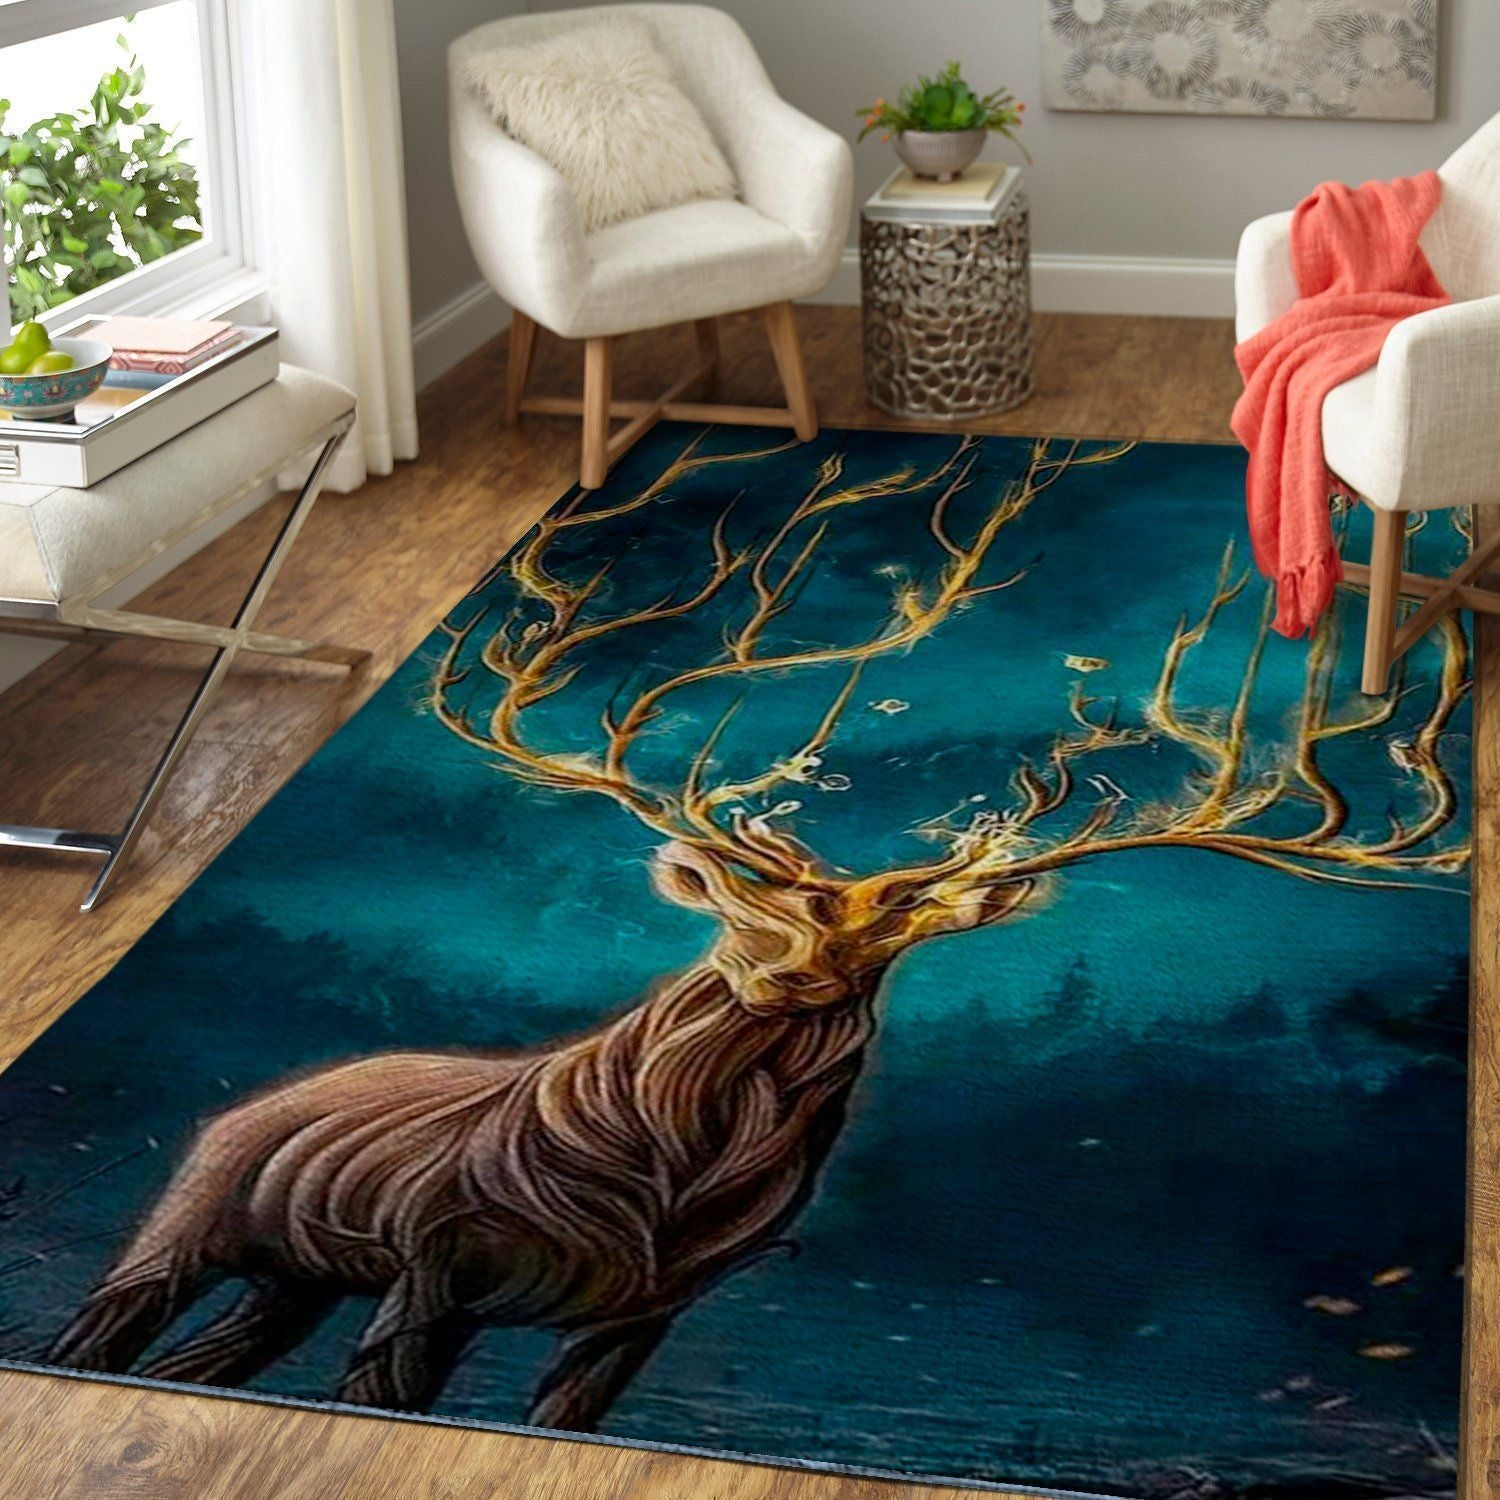 Art Of Deer Area Rug, OFD 1910164